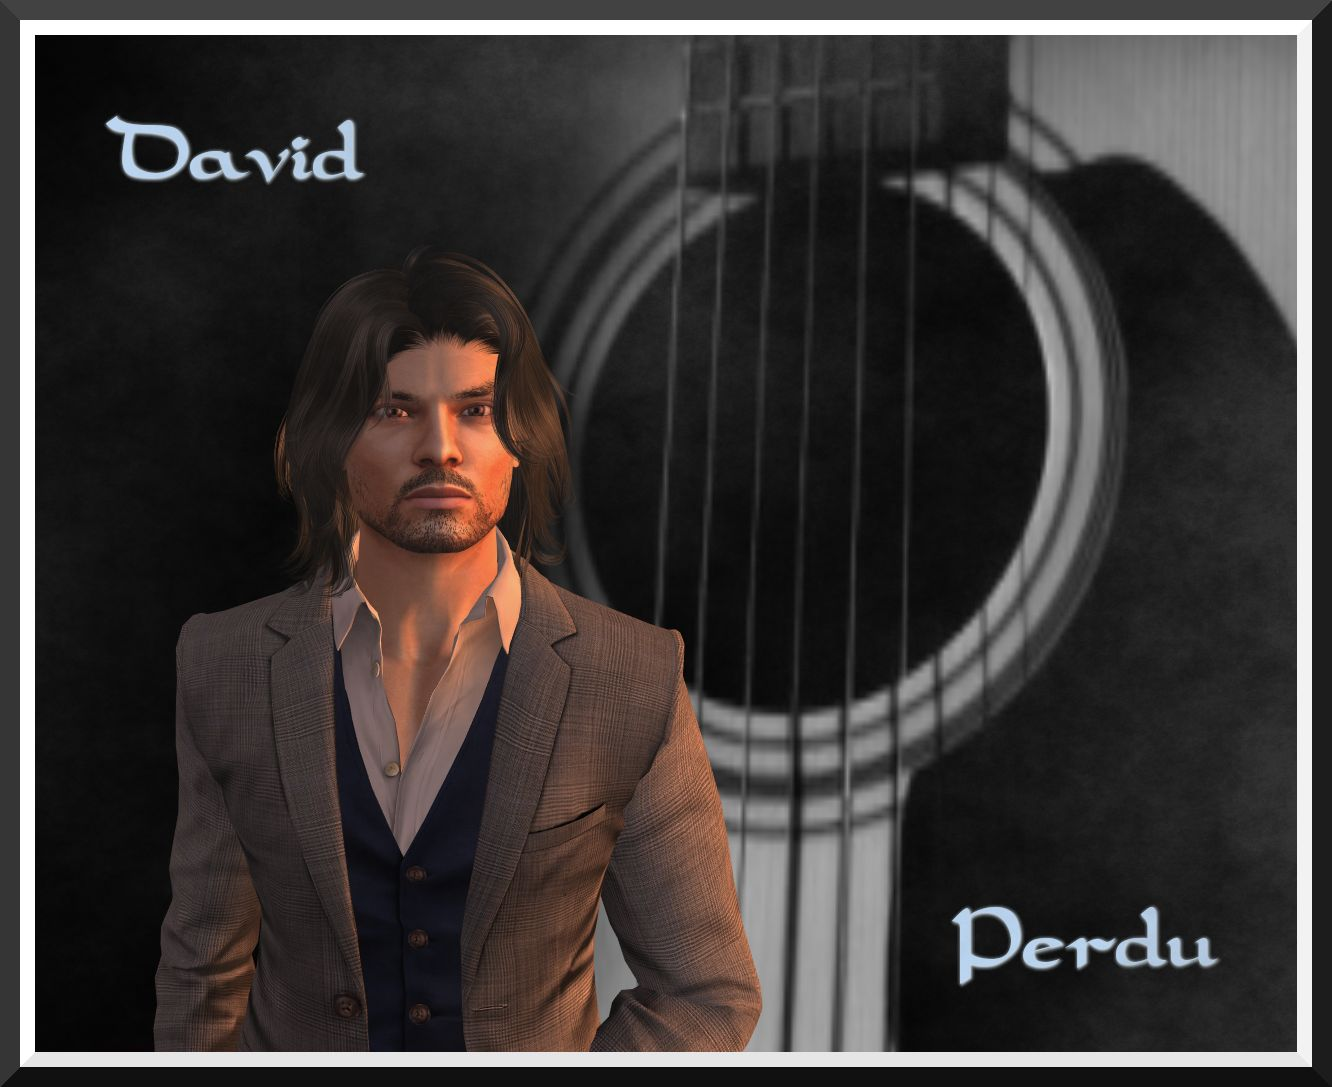 COMEBACKSHOW of David Perdu @ AdMiRe 9 AM